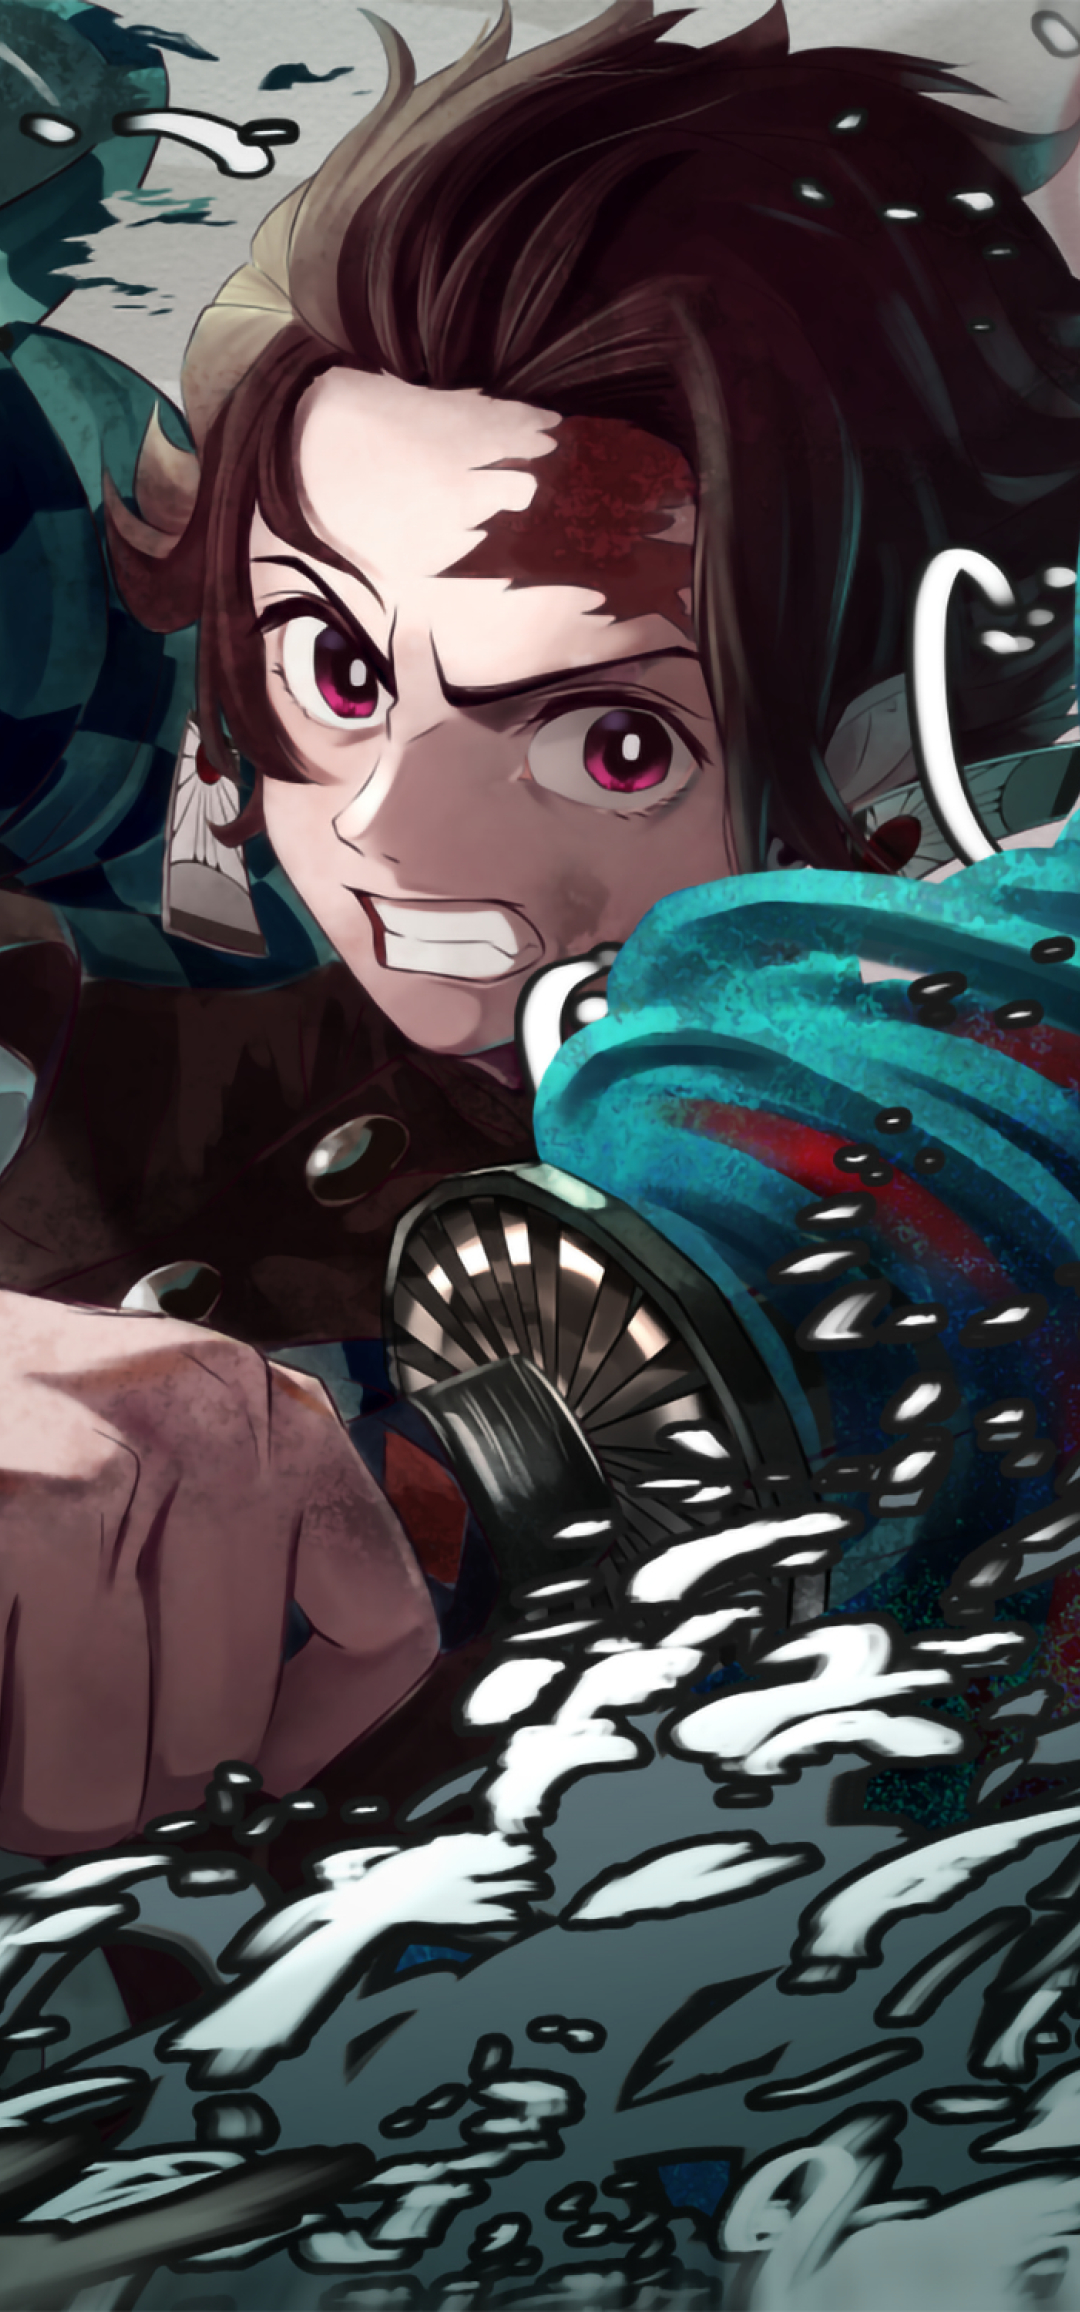 1080x2312 Tanjirou Kamado From Demon Slayer 1080x2312 Resolution Wallpaper, HD Anime 4K ...